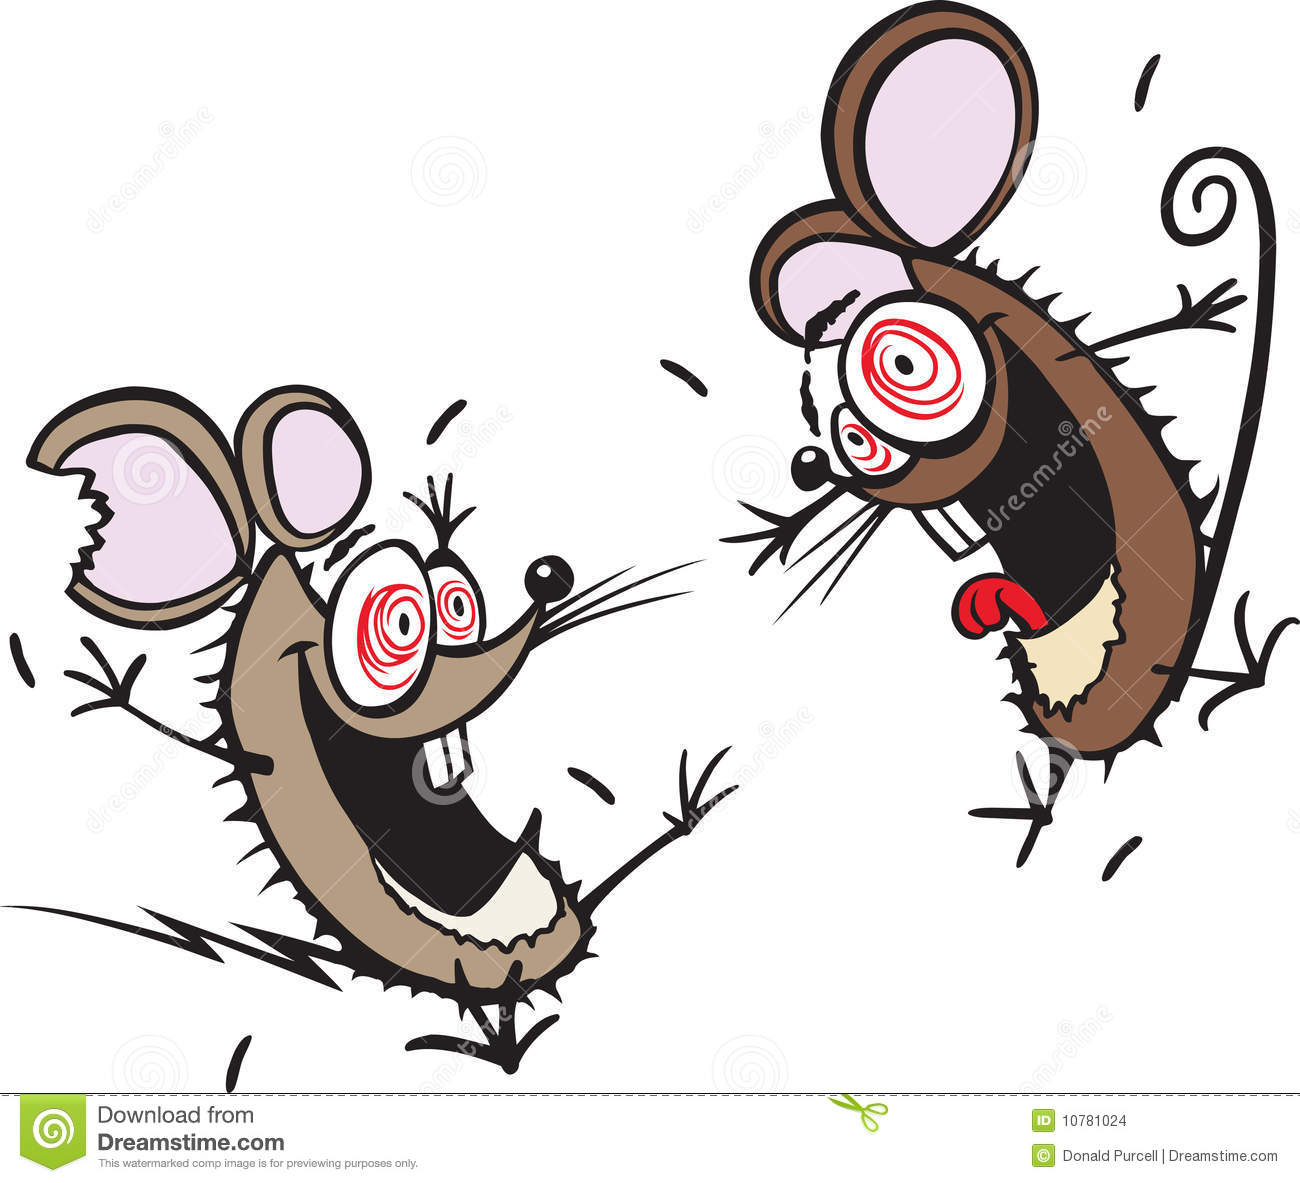 Crazy mice stock vector. Illustration of crazy, cartoon ...